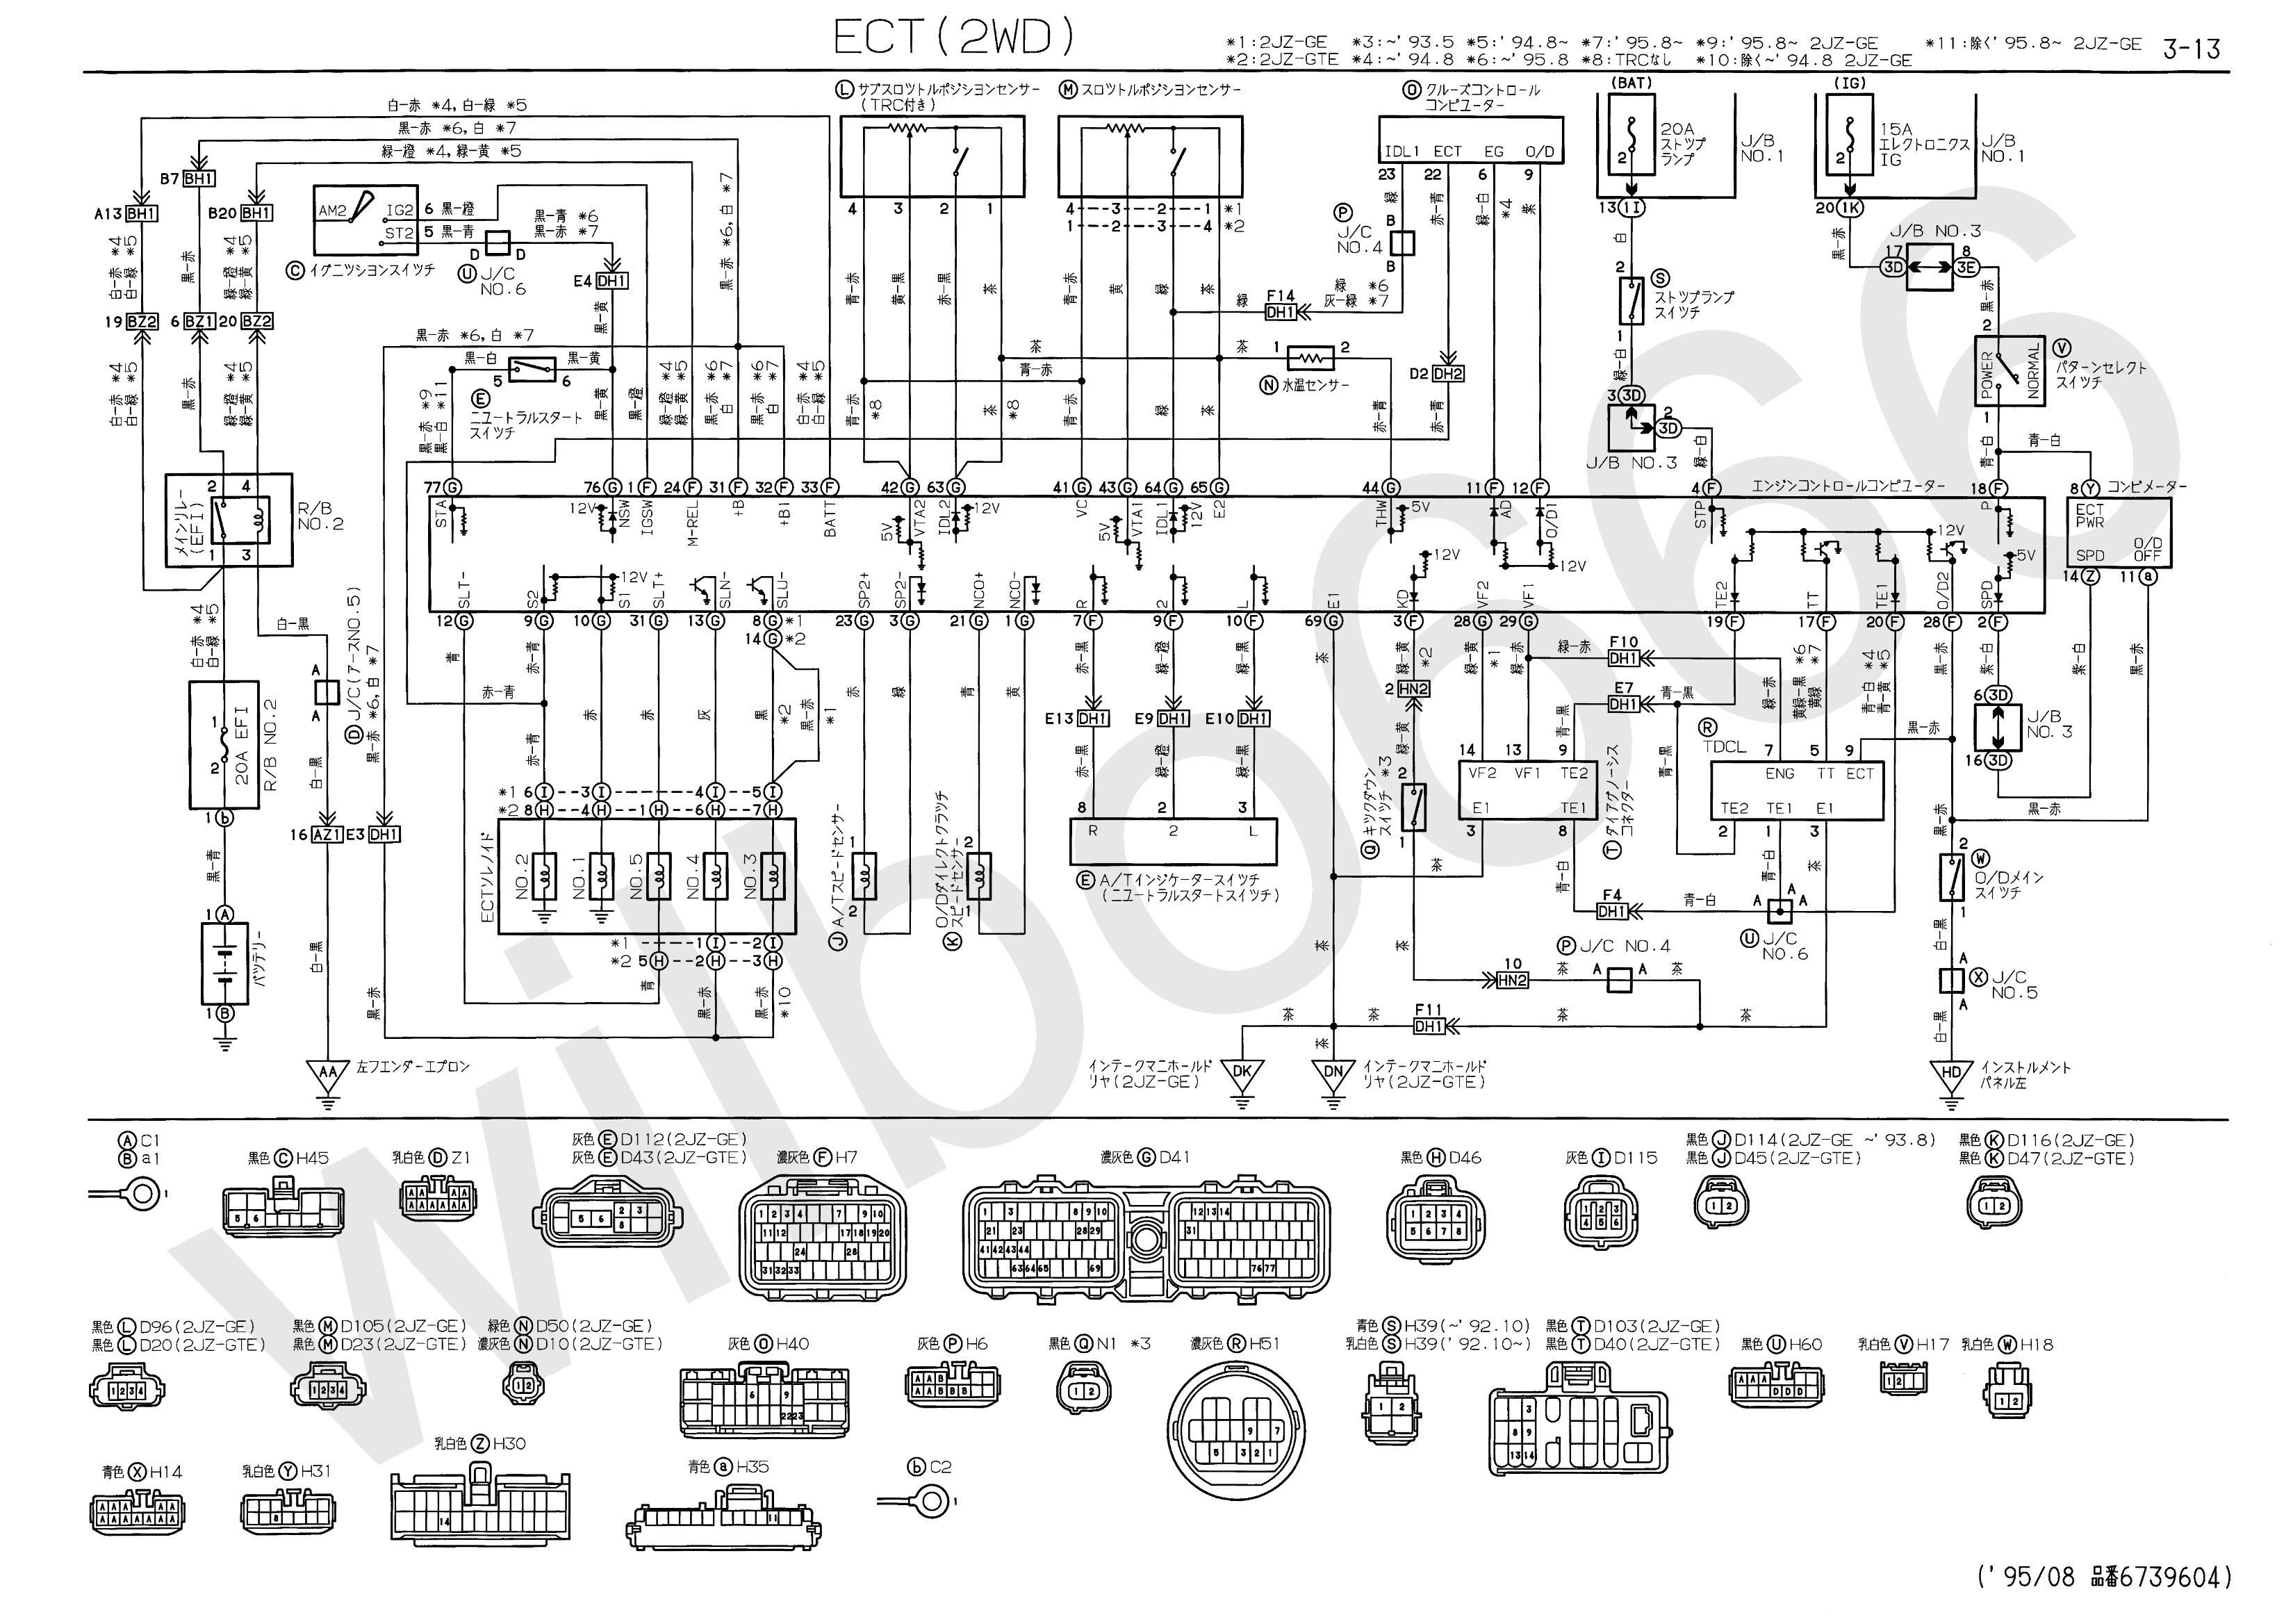 Toyota Wiring Diagrams 01 Chartsfree Diagram Images Electric Furnace Get Free Image About Car Parts Download